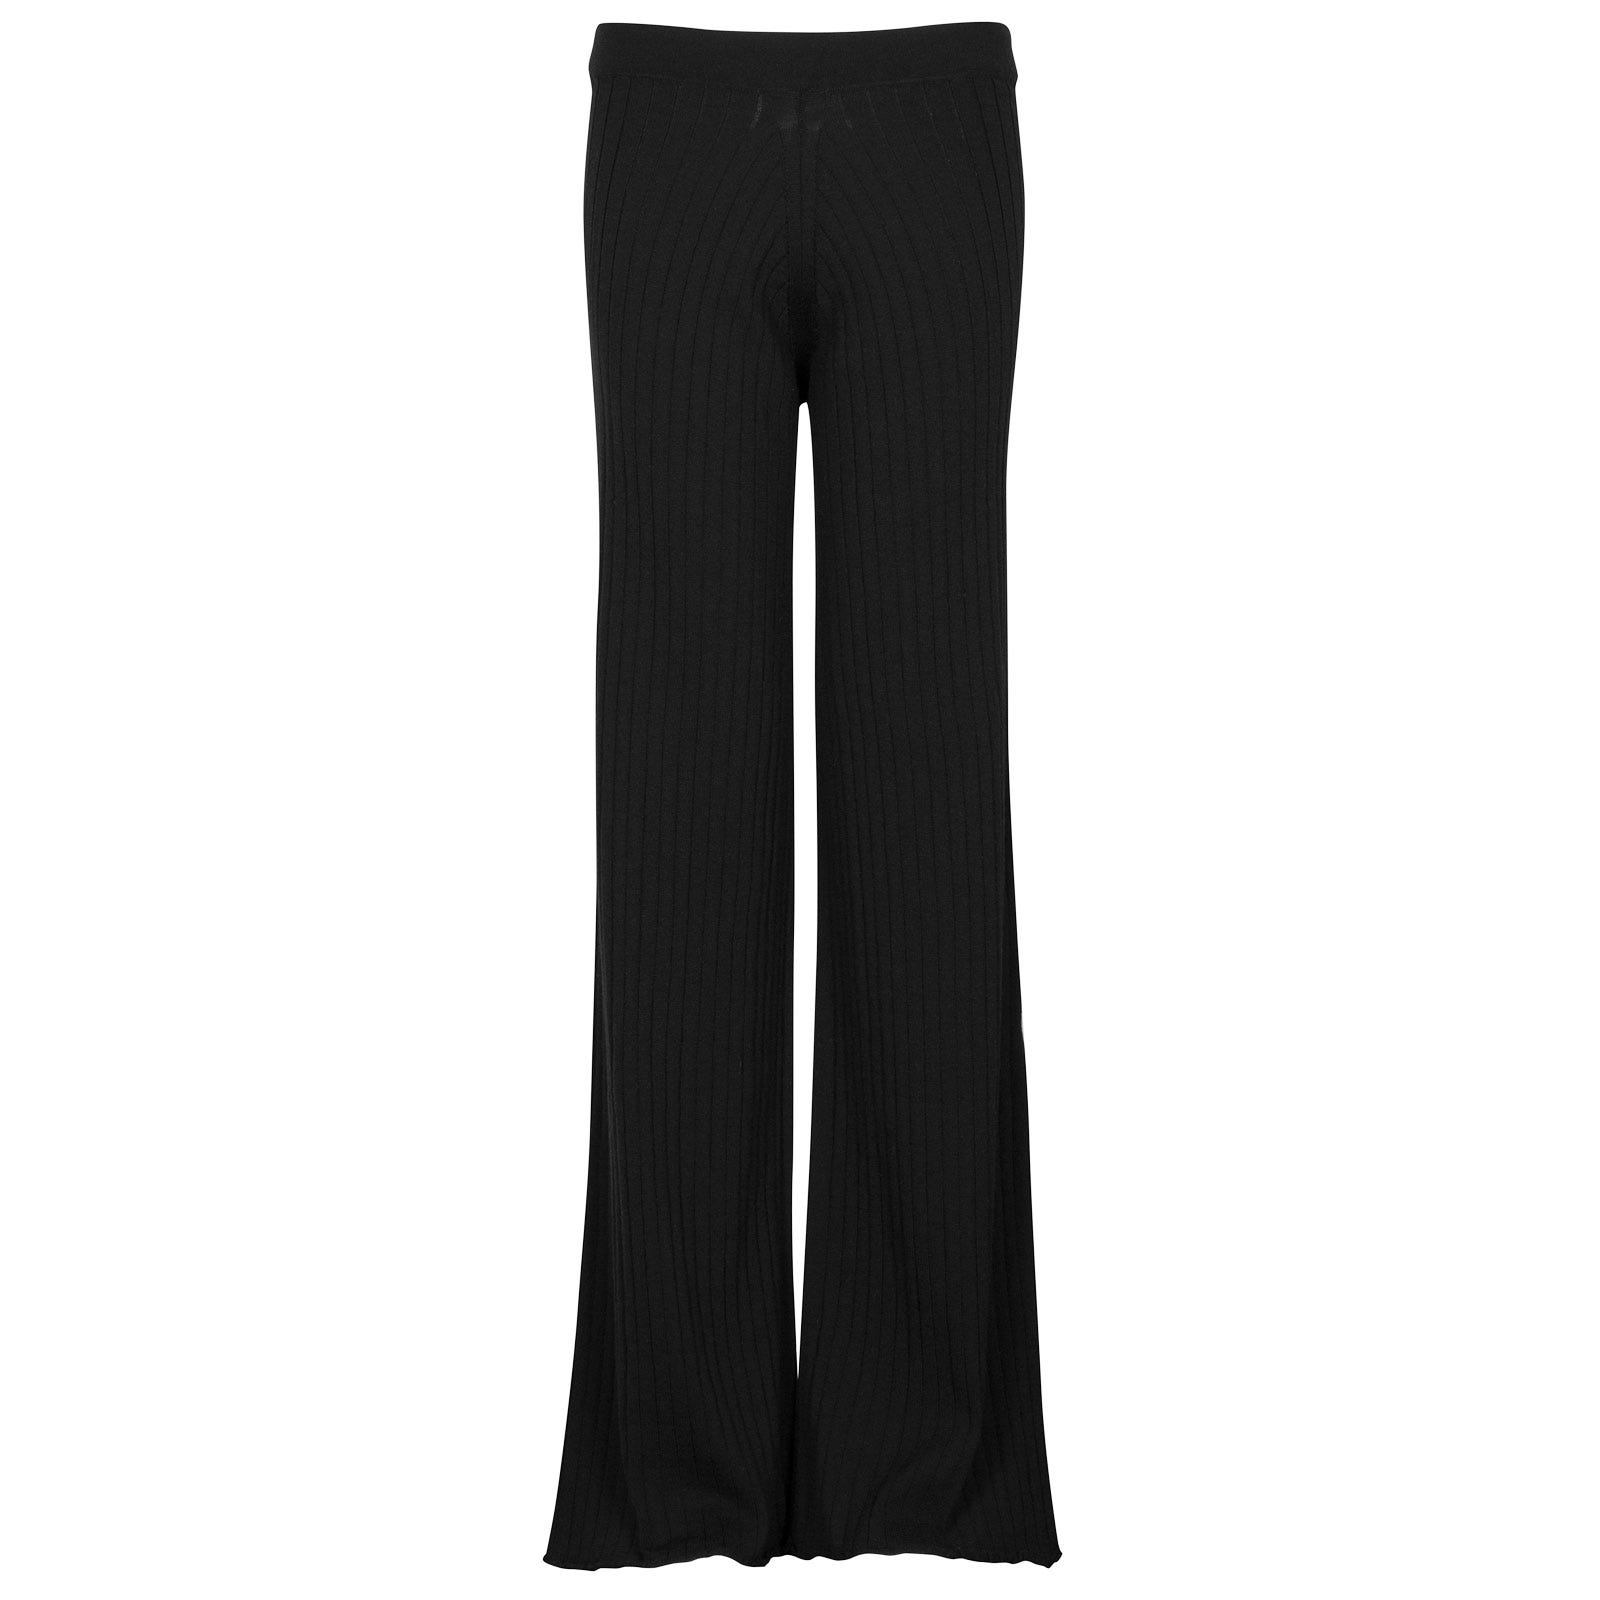 John Smedley joanie Merino Wool Trouser in Black-XL